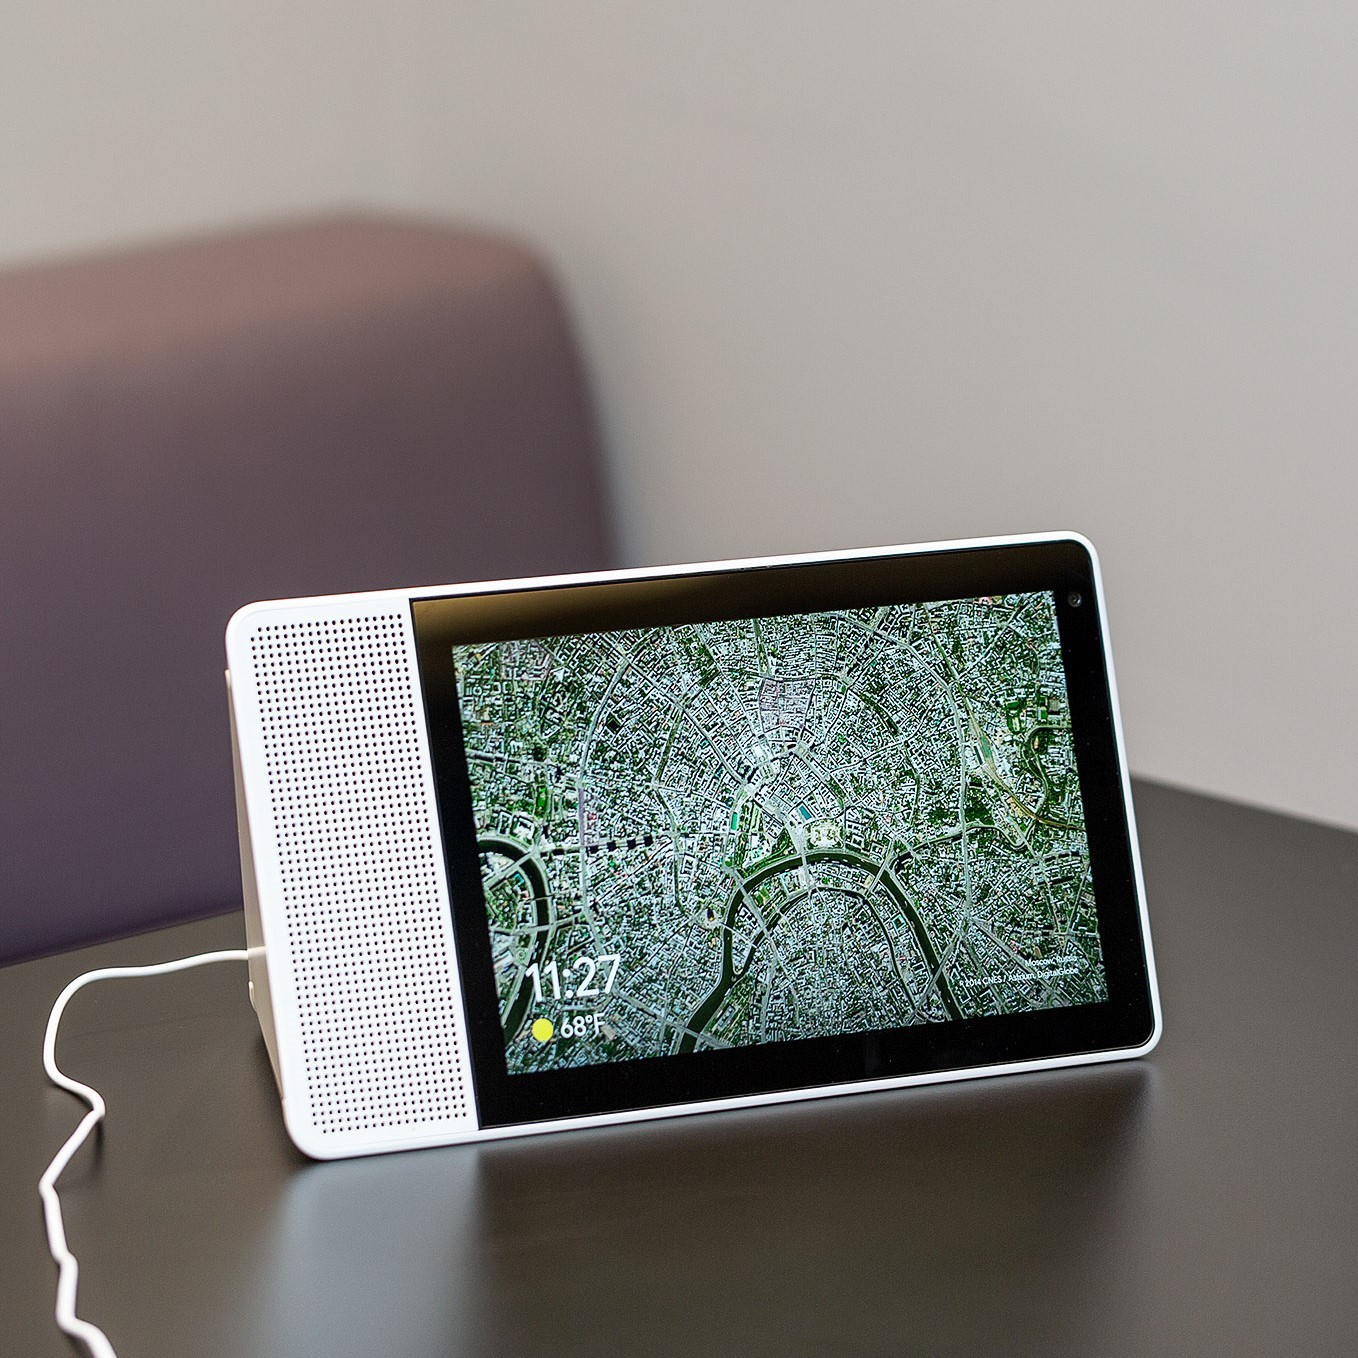 Lenovo Smart Display review: a Google Assistant speaker with